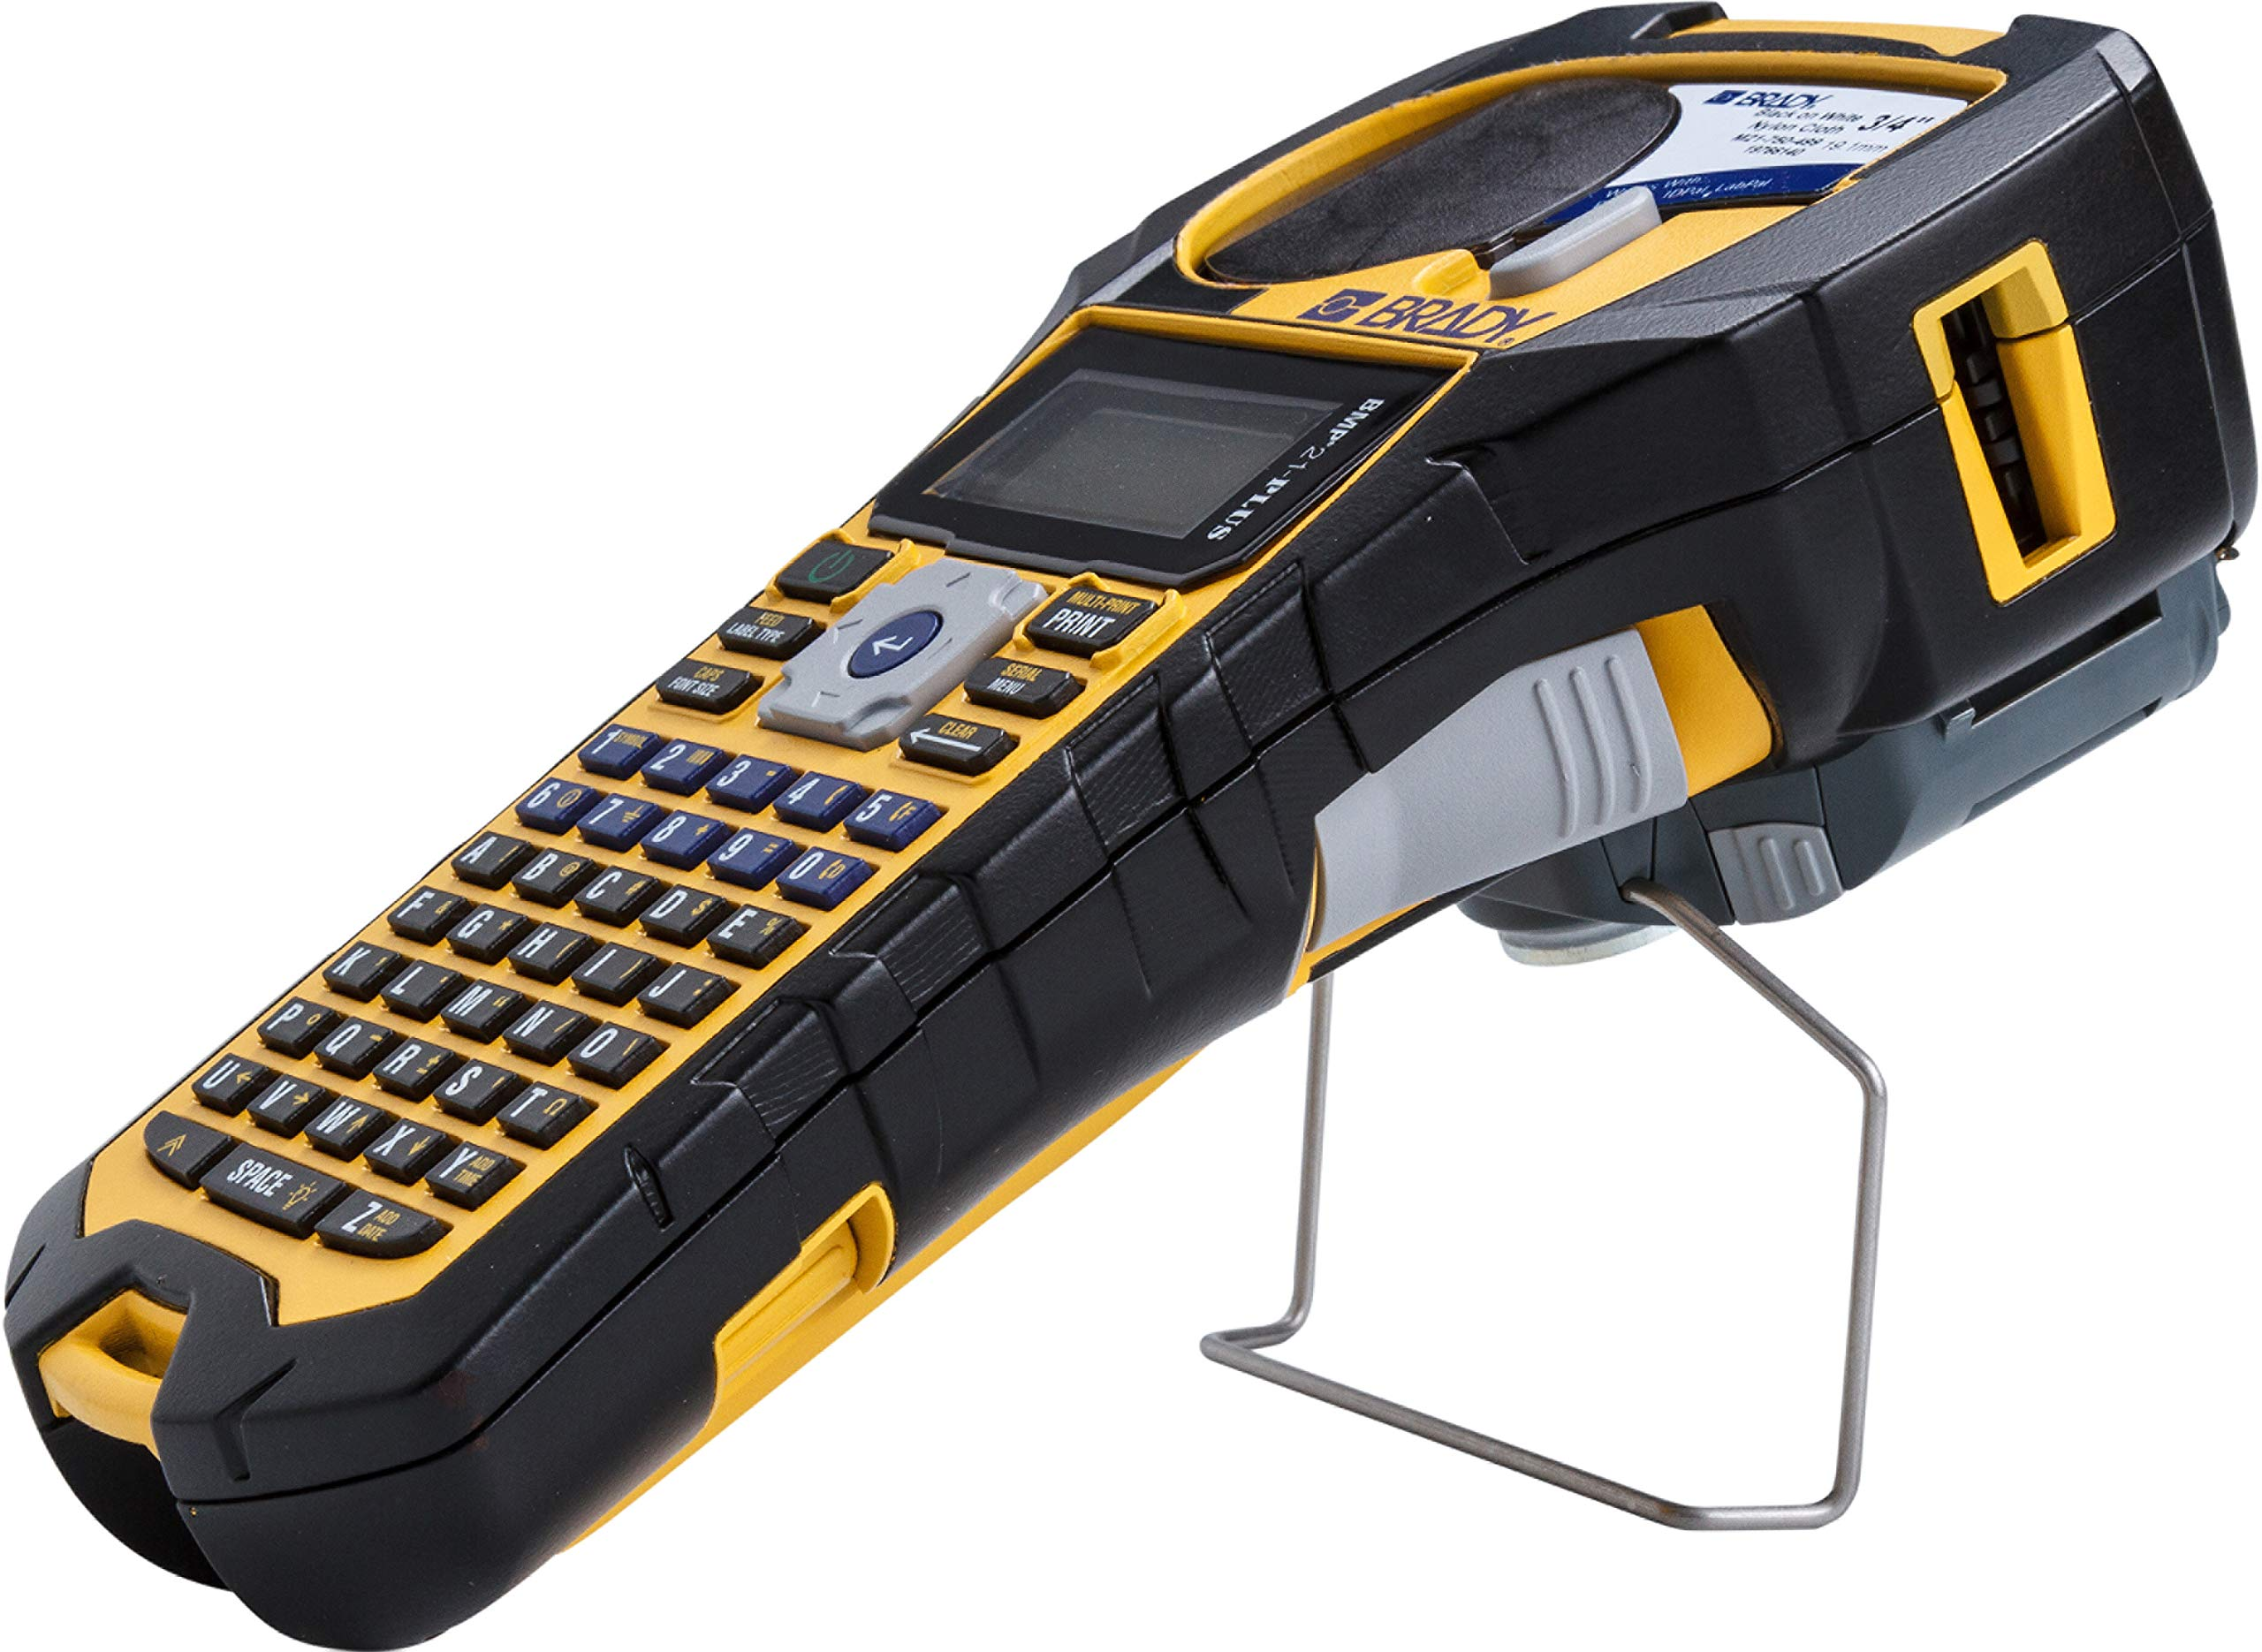 6 Brady BMP21-PLUS Handheld Label Printer with Rubber Bumpers Multi-Line Print